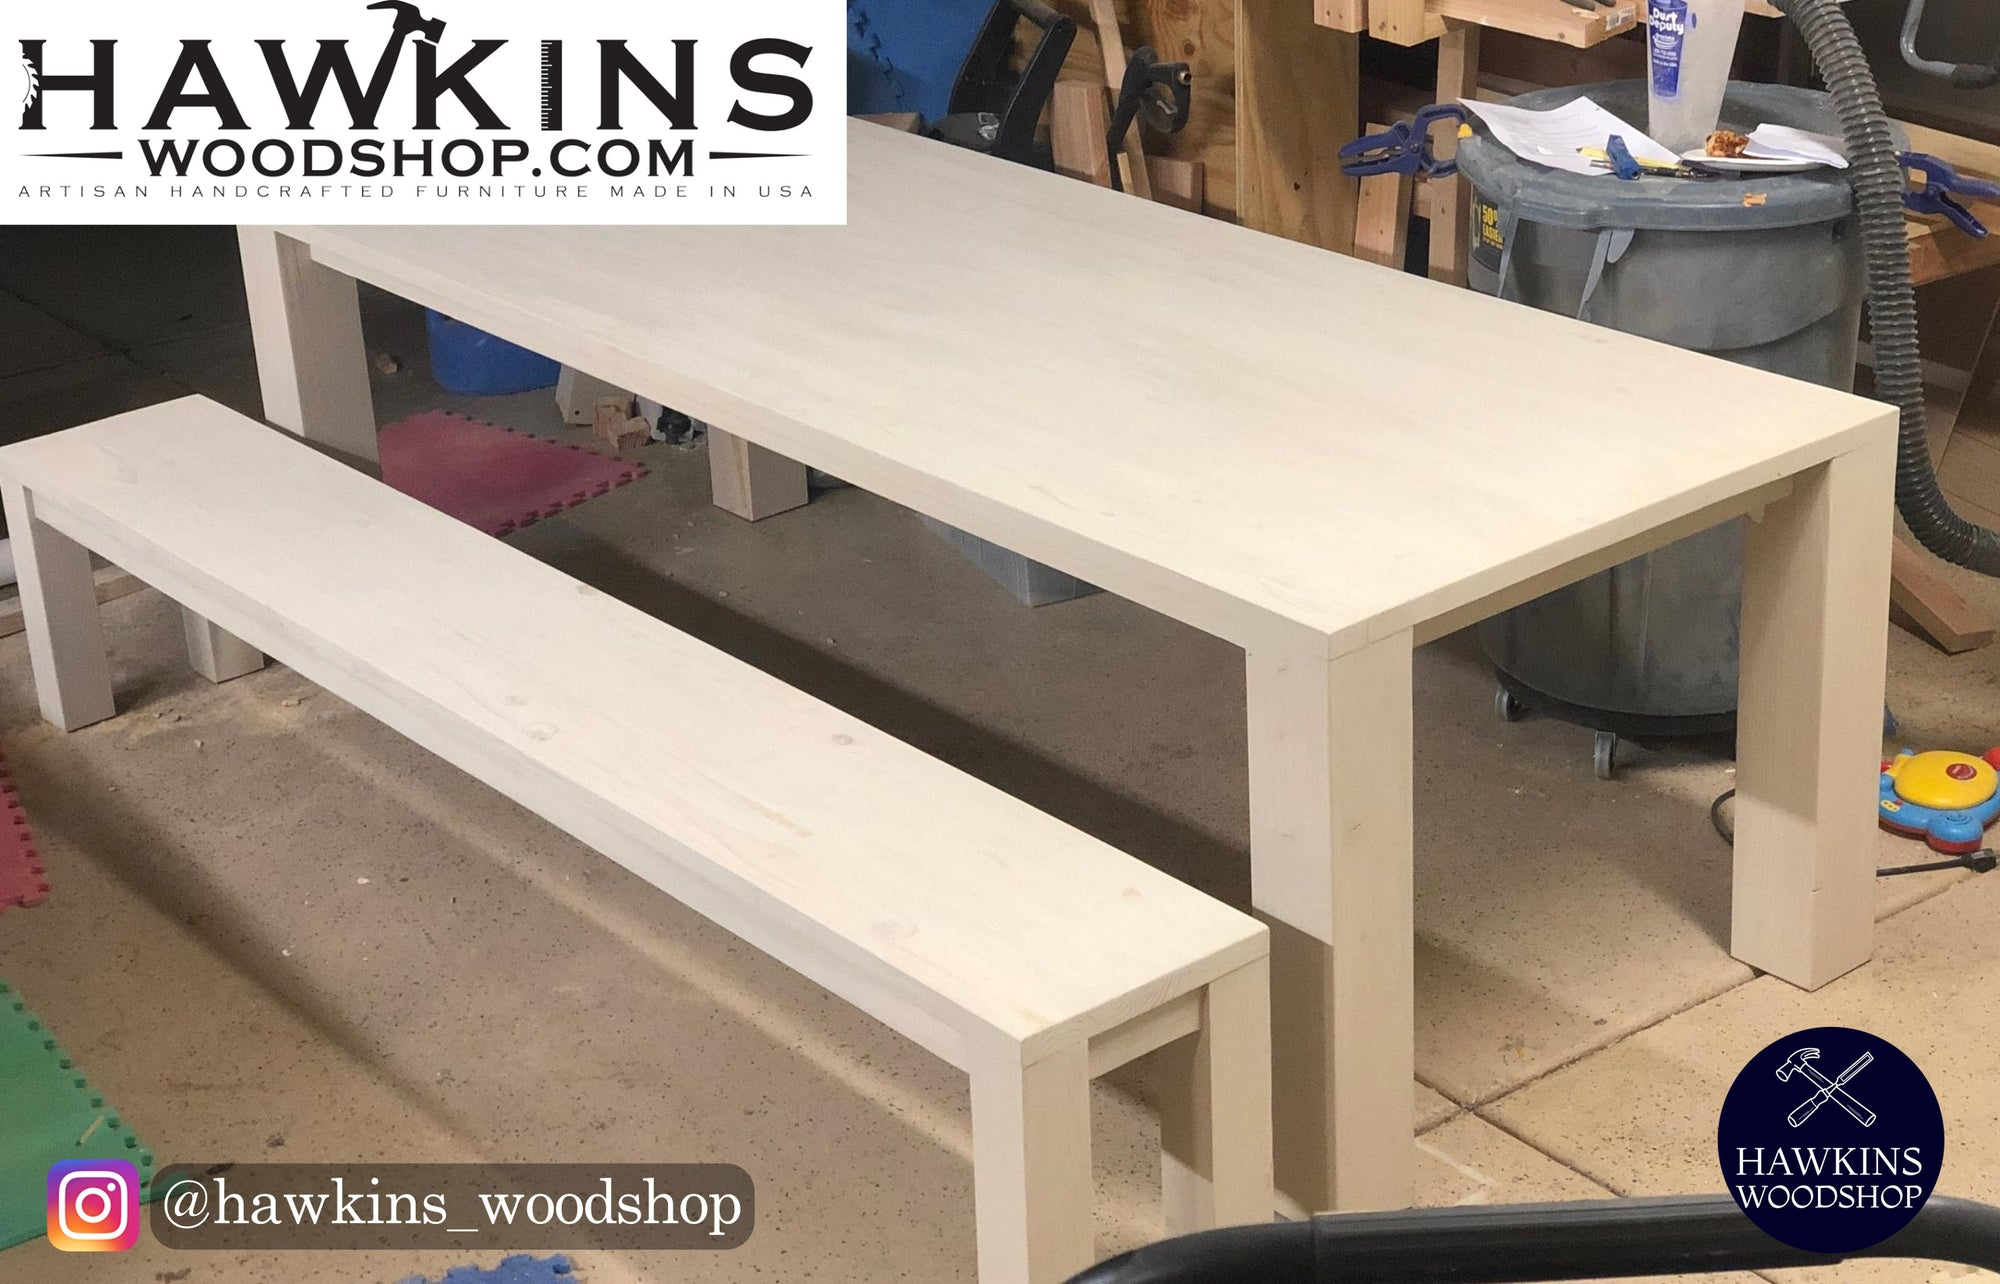 "Shop hawkinswoodshop.com for discounted solid wood & metal modern, traditional, contemporary, custom & farmhouse furniture including our Modern Farmhouse Rustic Dining Table - Choose Own Length x 38"" W x 30"" H.  Ask about our free delivery & assembly collections today!"